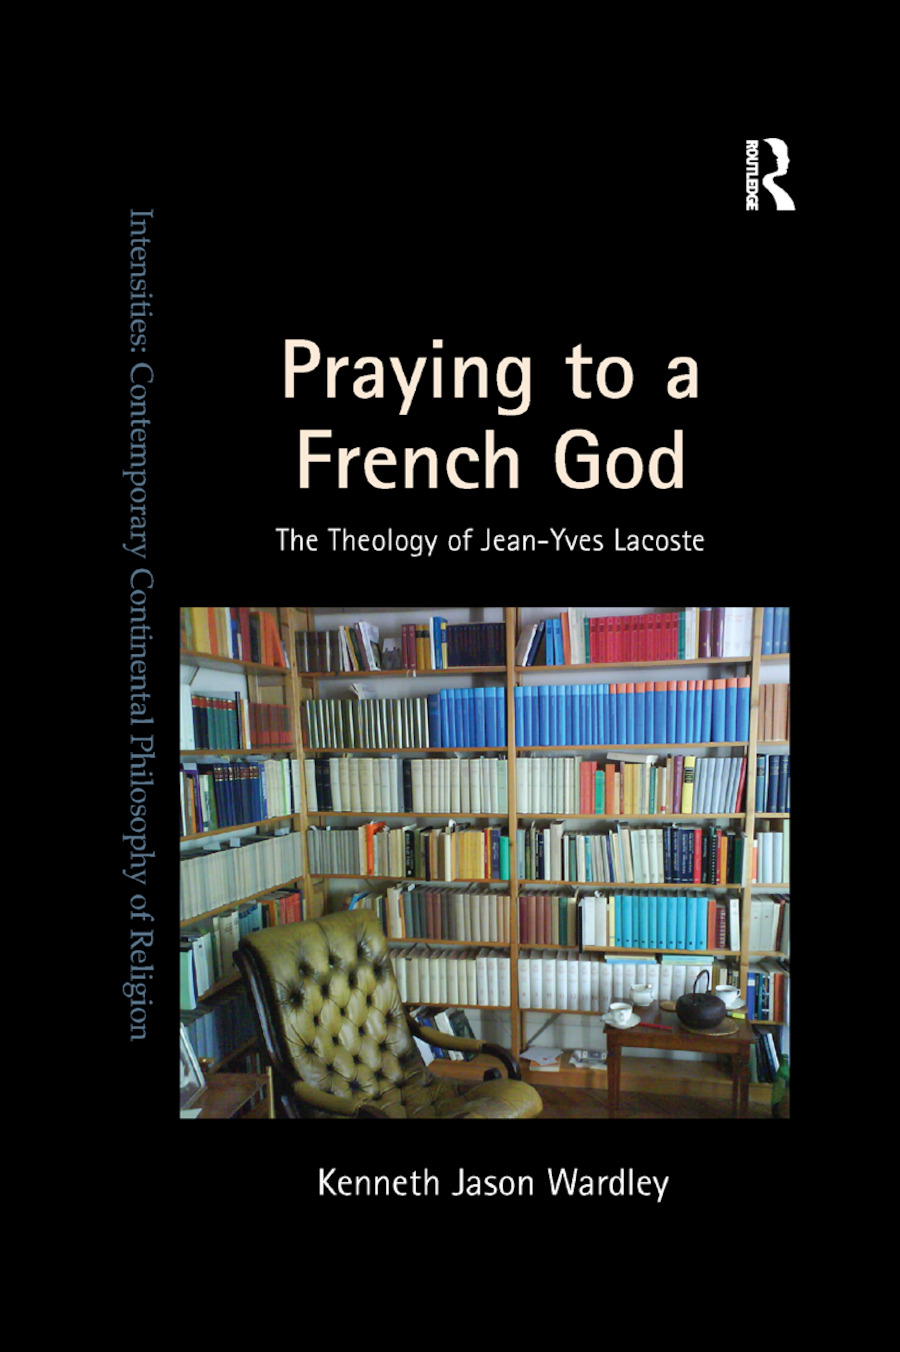 Praying to a French God